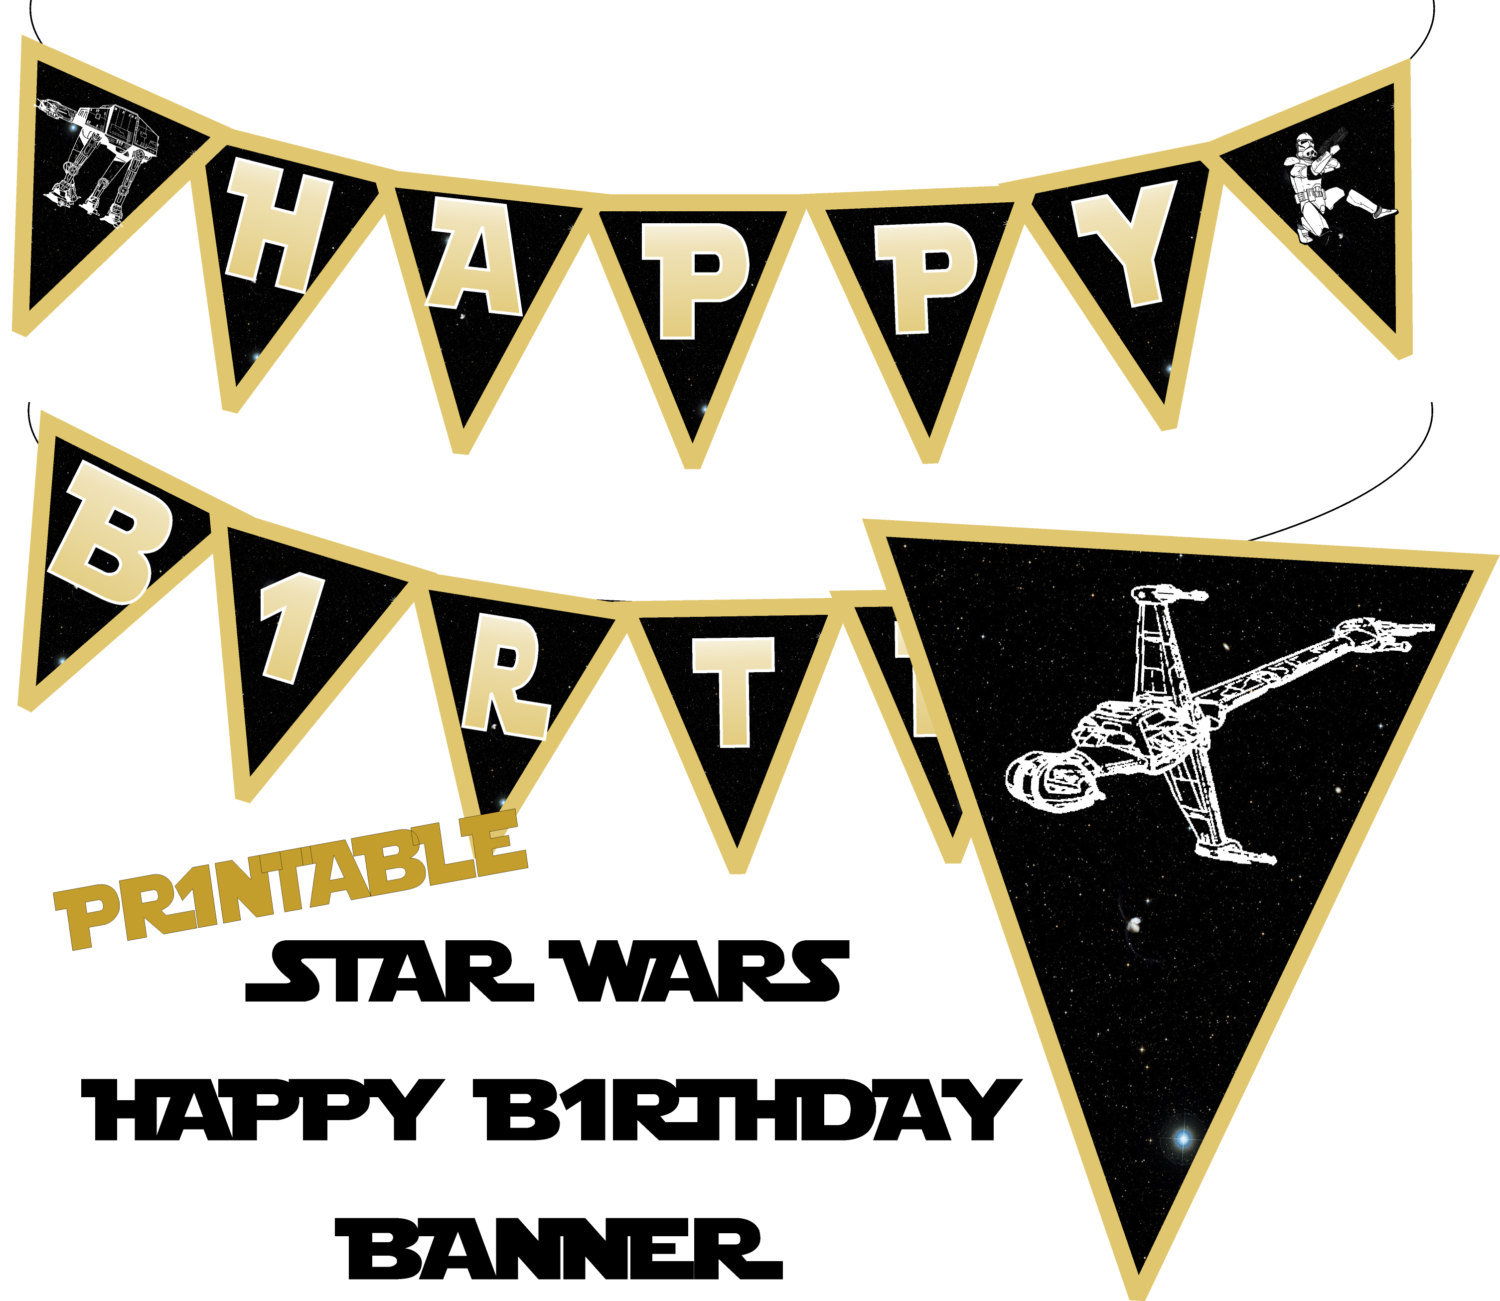 Star Wars clipart birthday party #8